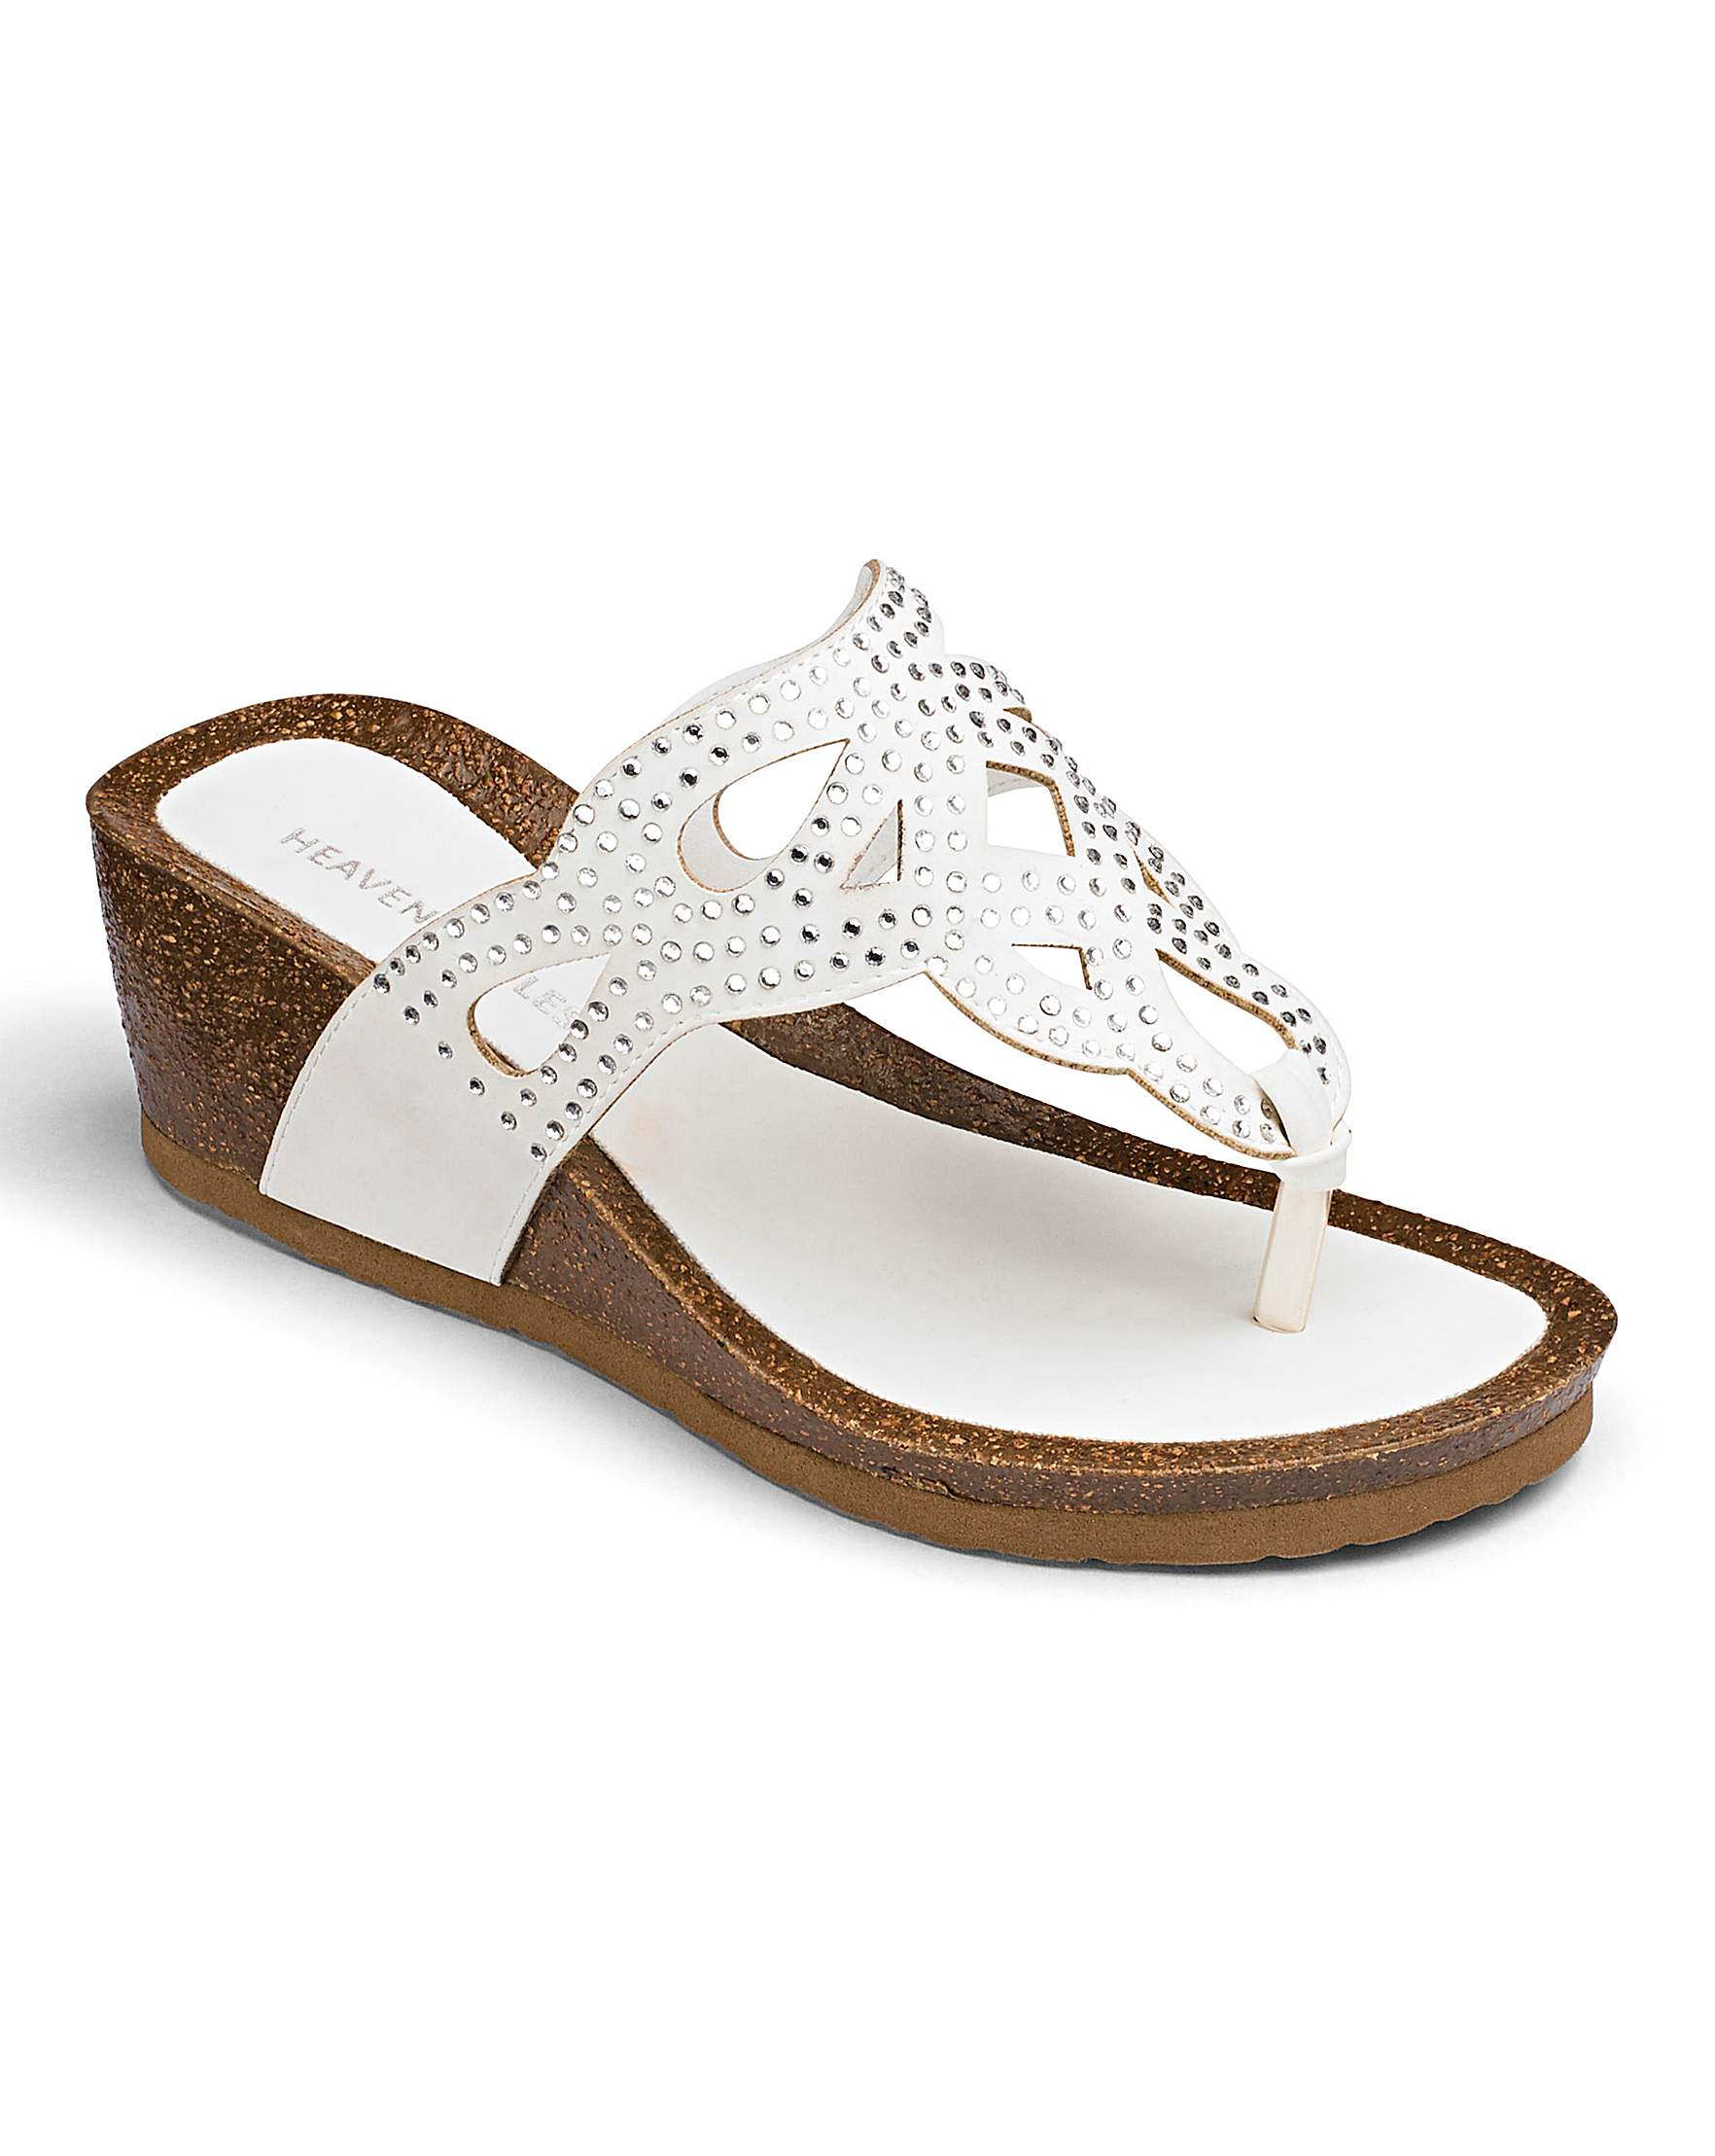 a7ab829b243c Heavenly Soles Wedge Sandals E Fit